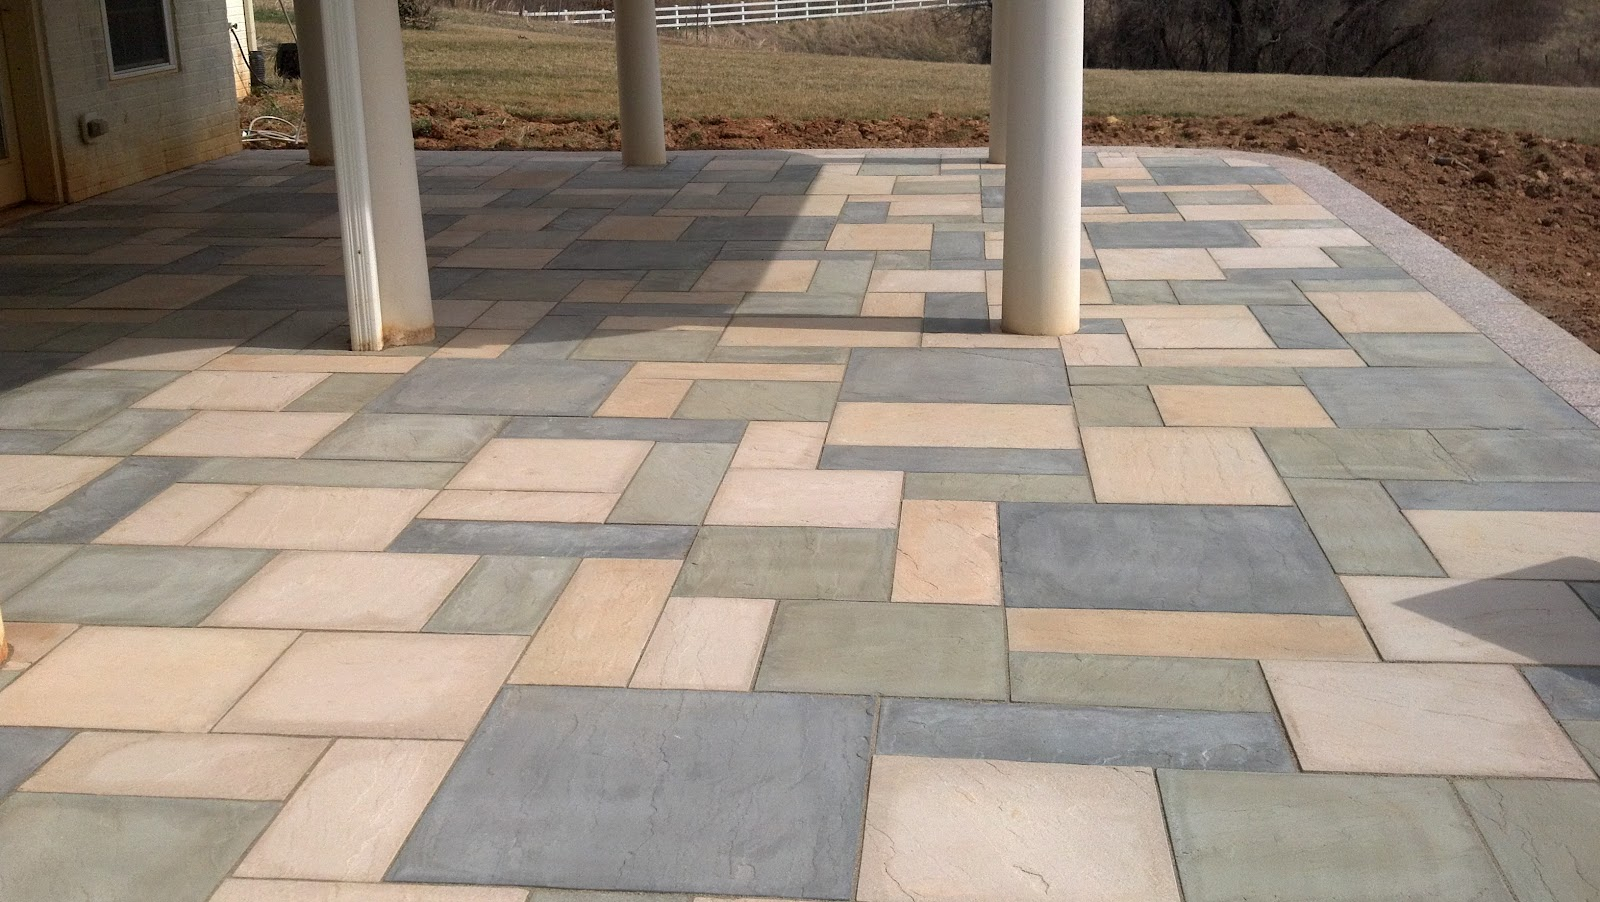 Life time pavers aberdeen slab pavers by techo bloc for Techo bloc